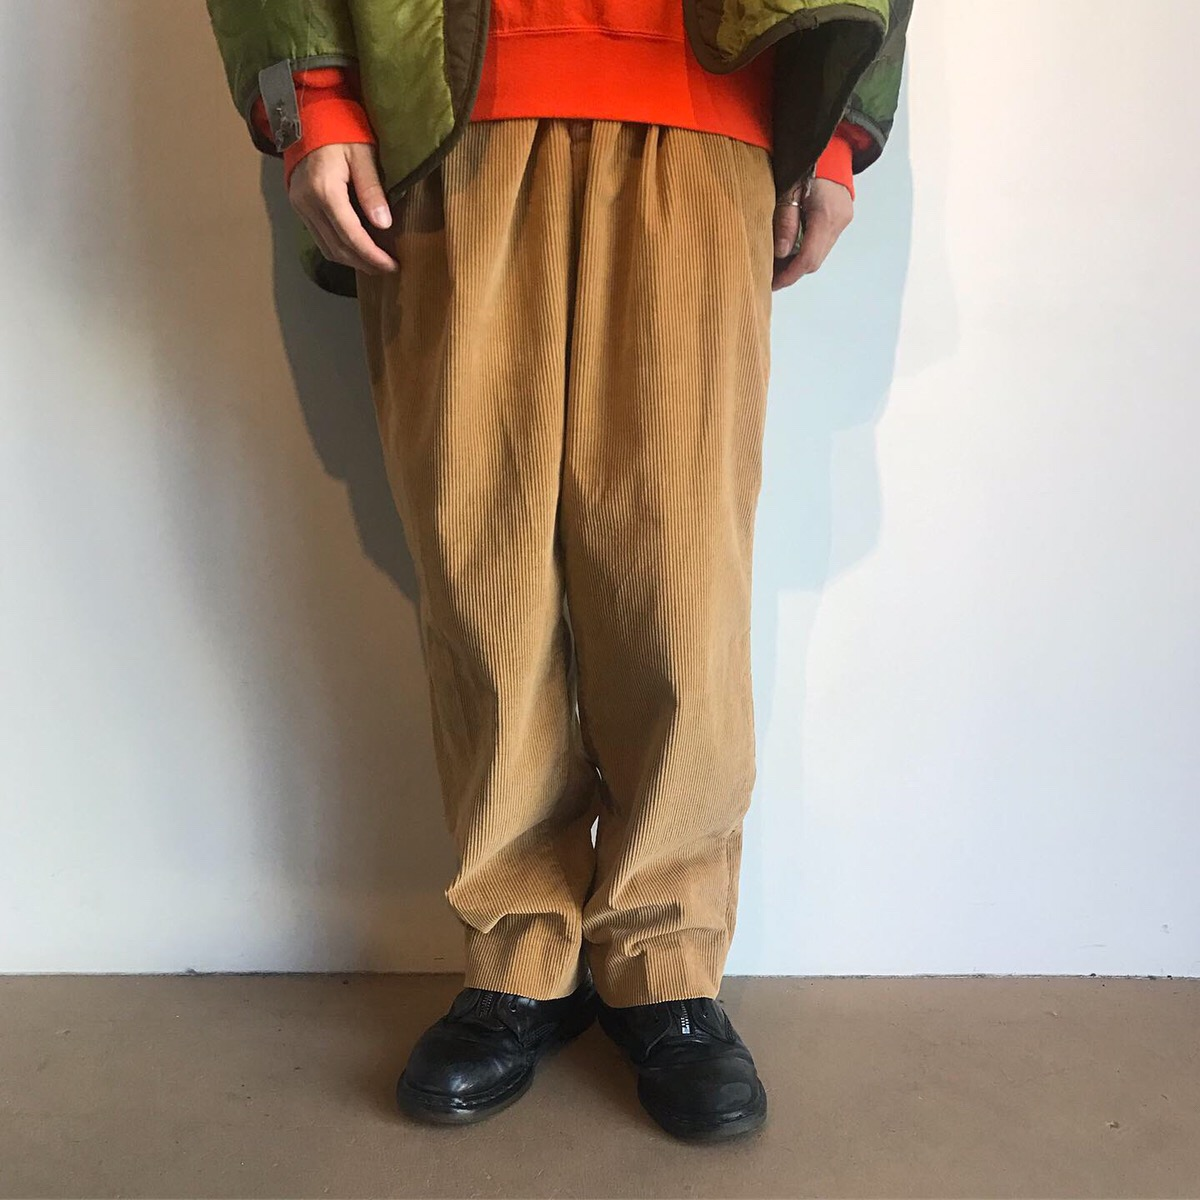 90s Patagonia corduroy pants made in USA